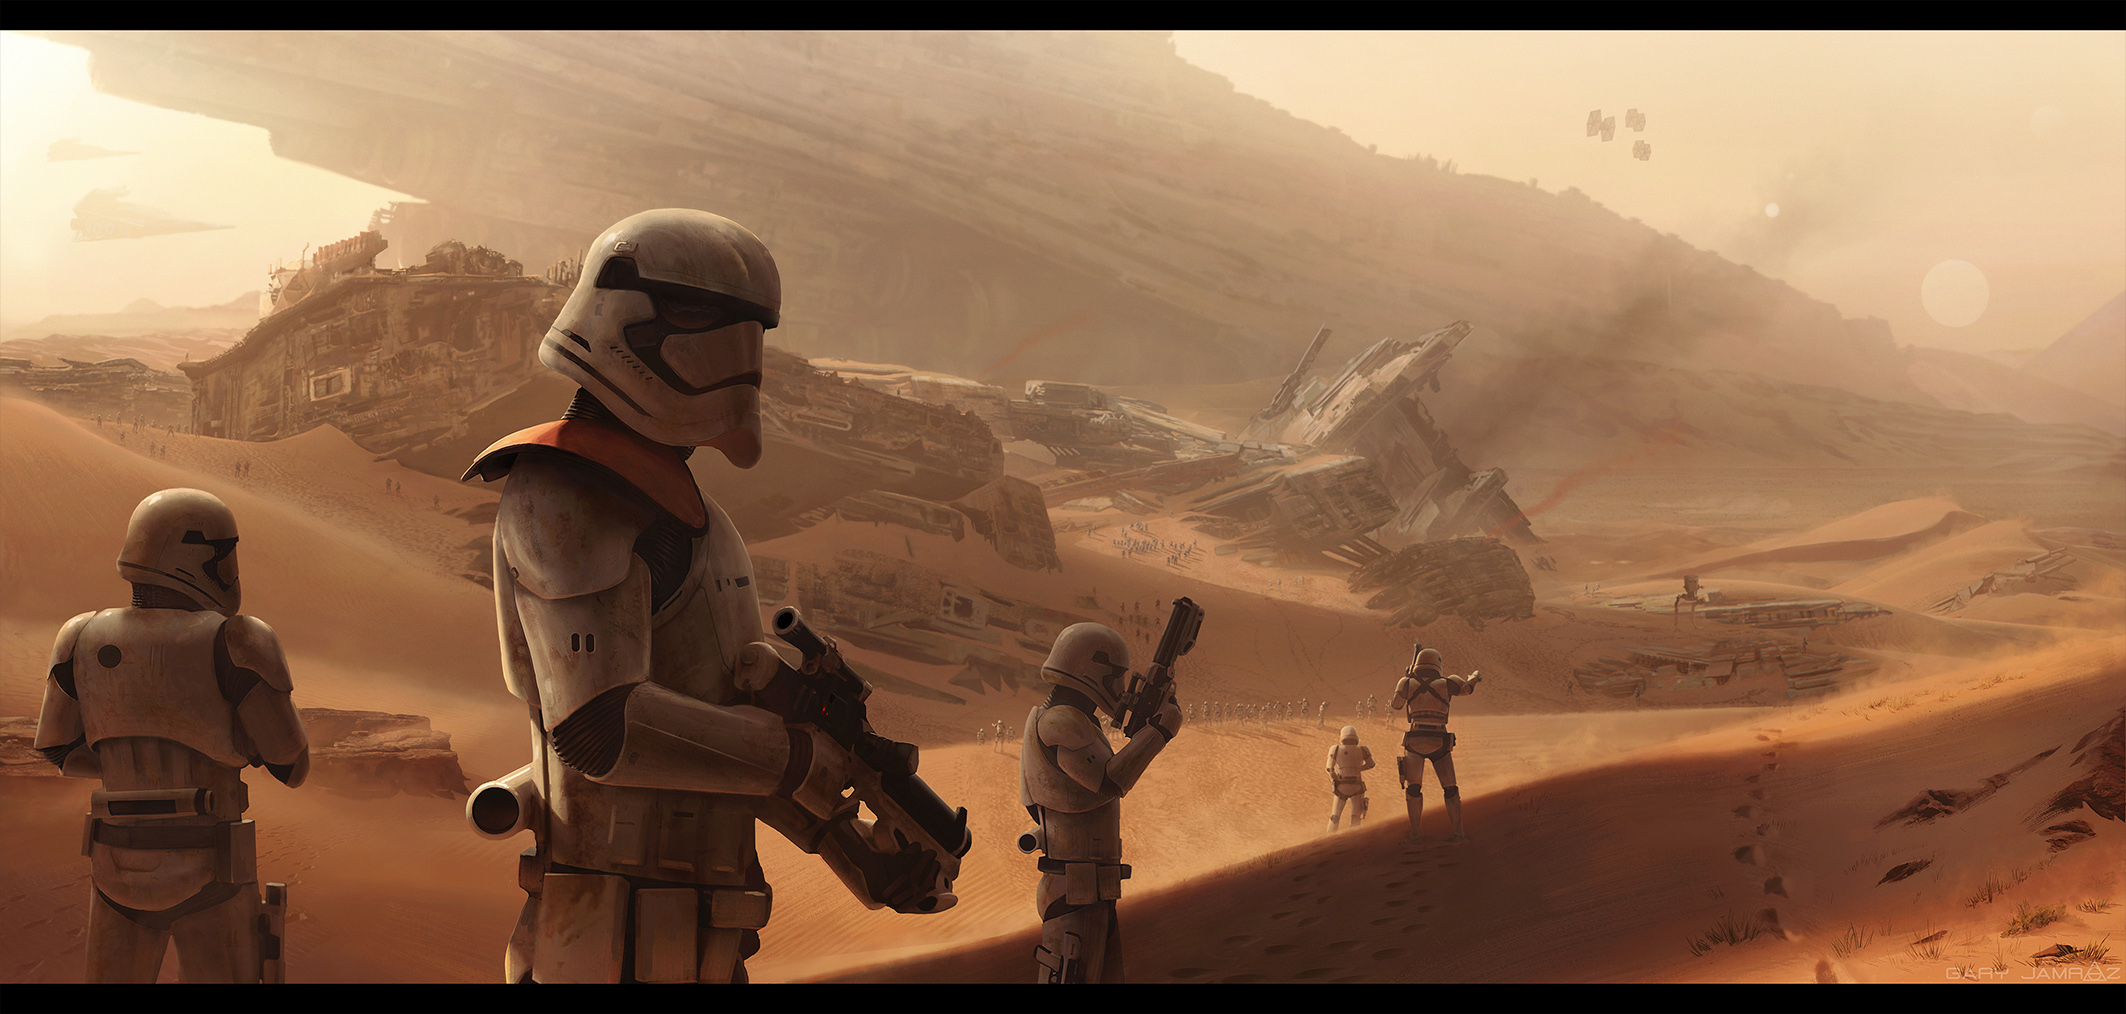 FIRST ORDER TROOPERS - fan art by jamga